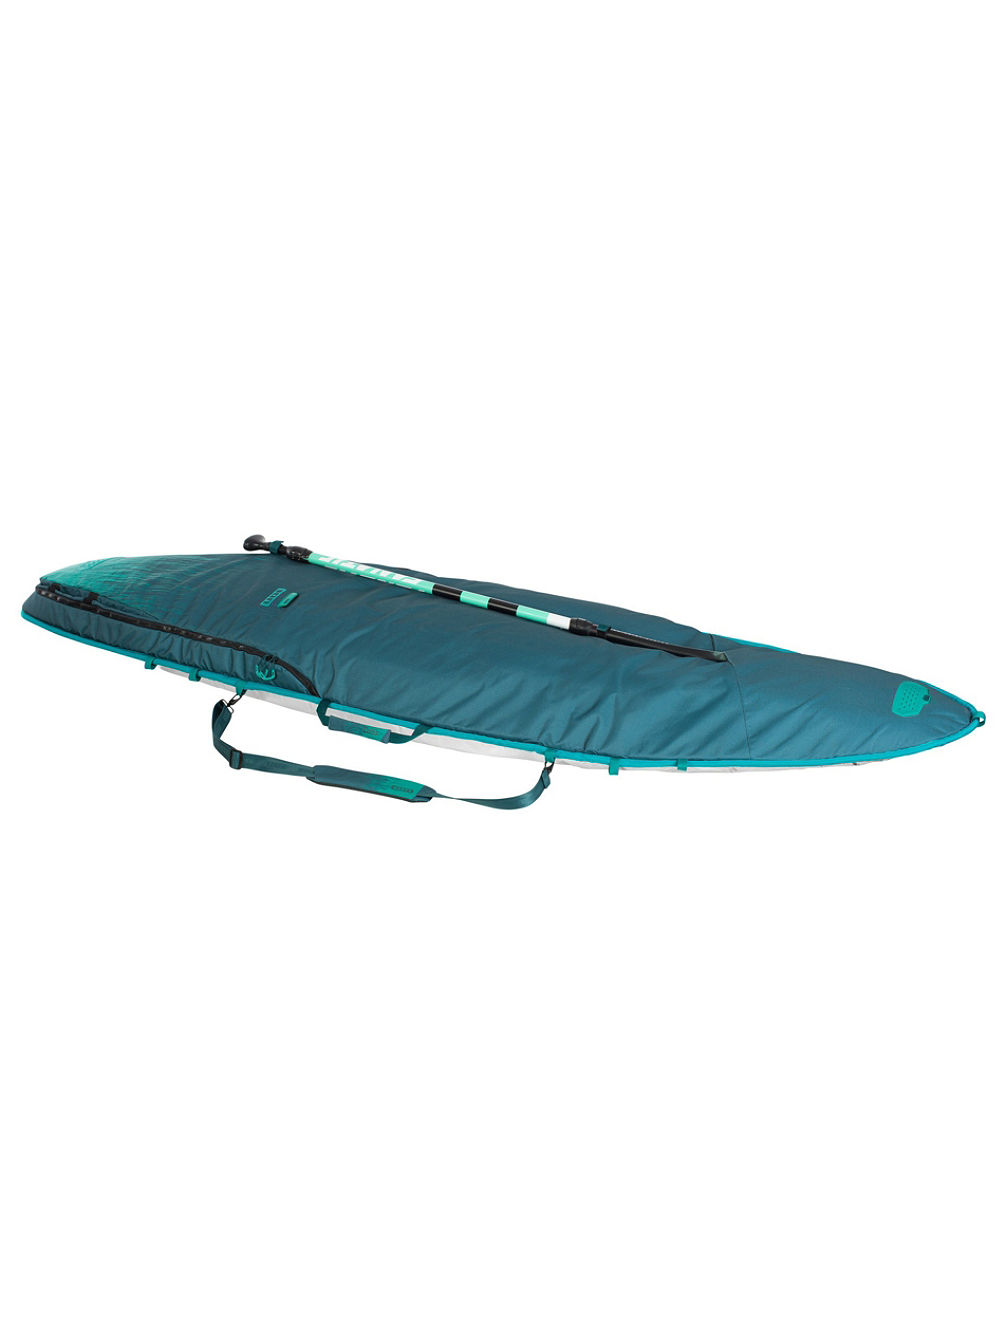 SUP TEC 10'6x33'' Boardbag